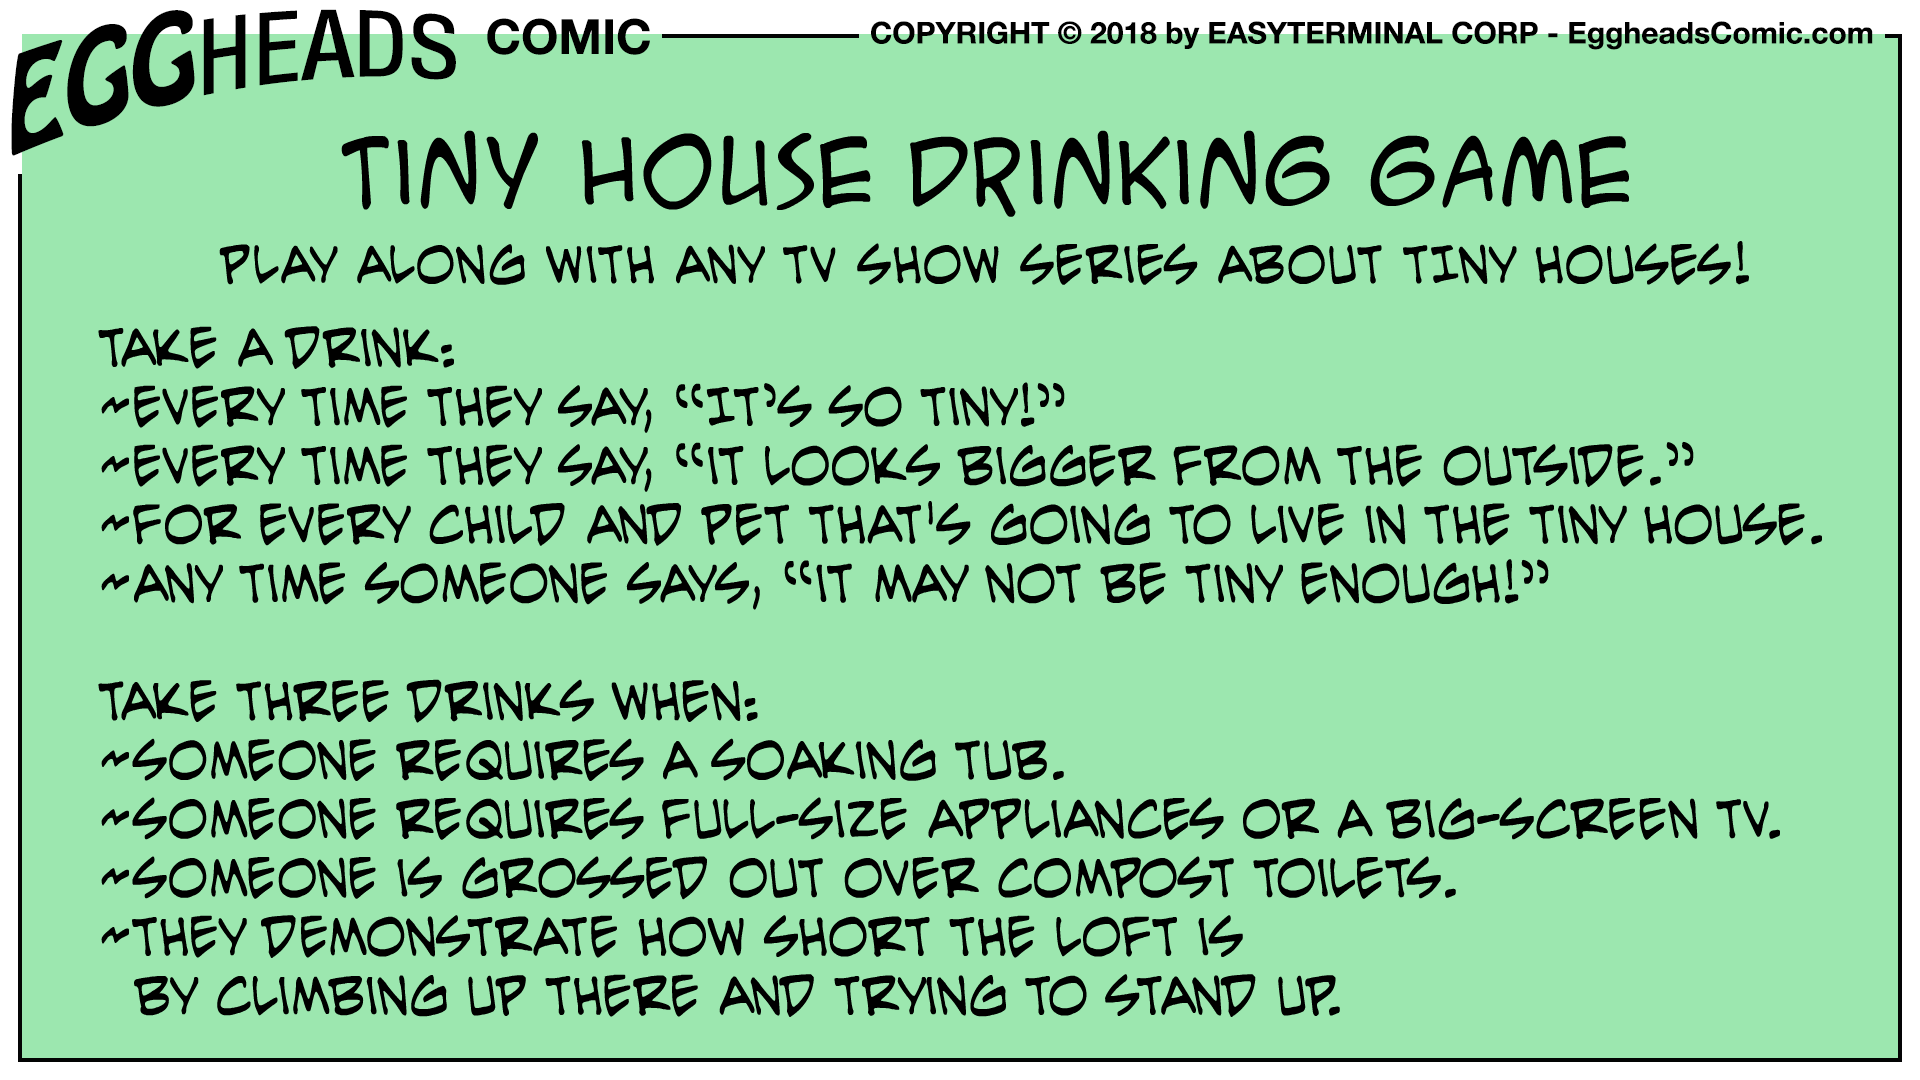 Webcomic Eggheads Comic Strip 065 Tiny House Drinking Game